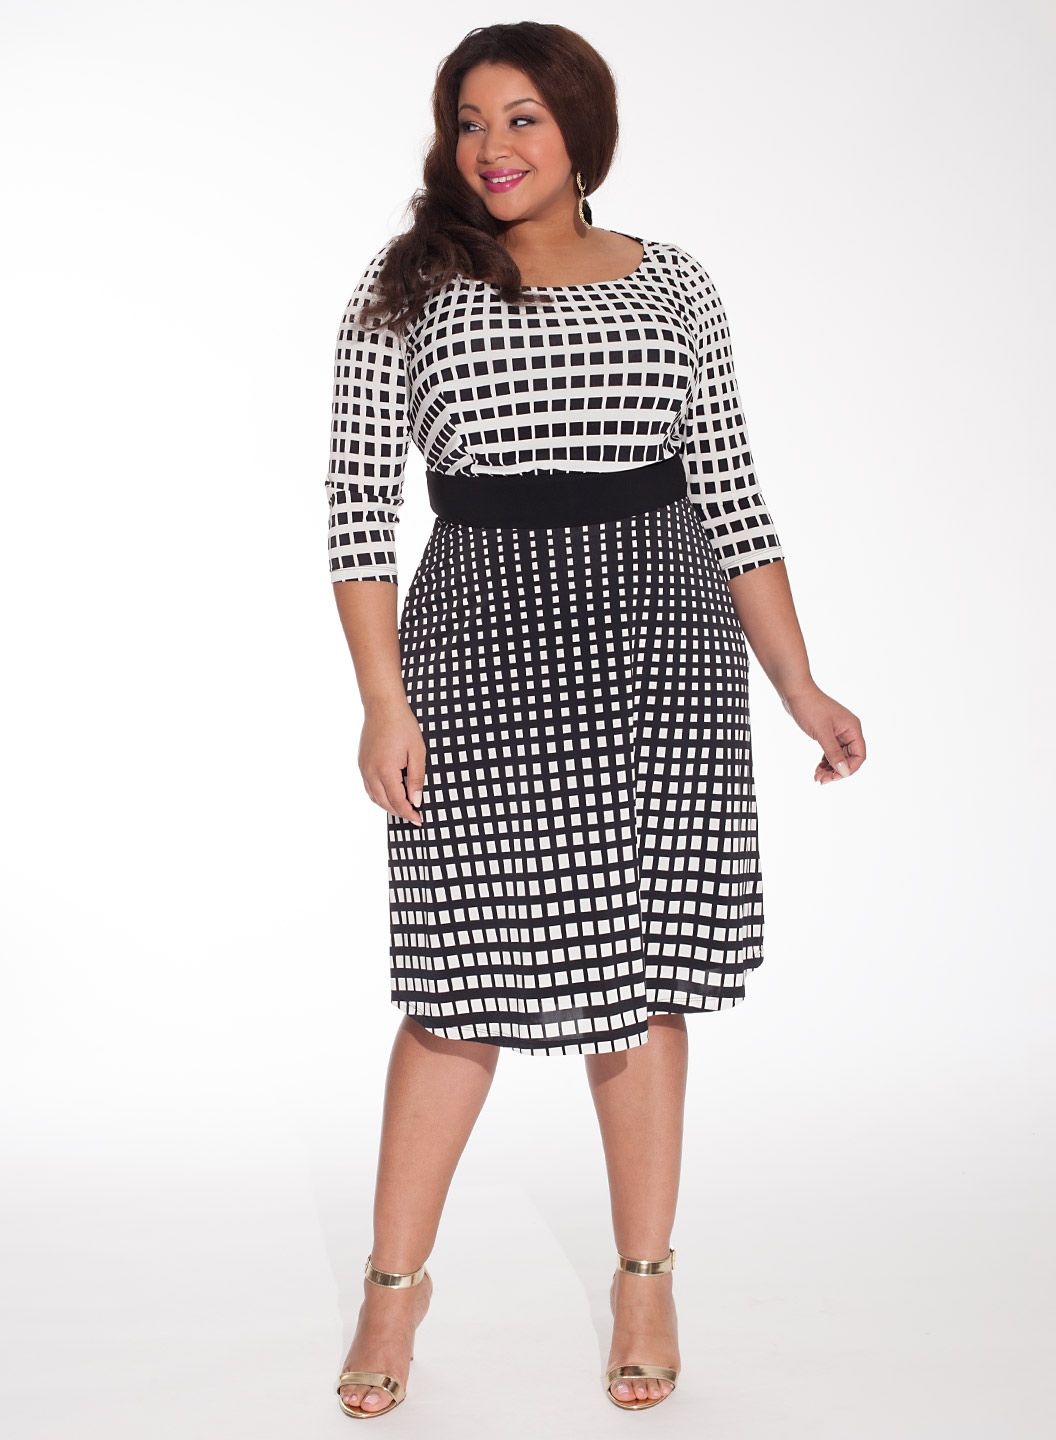 Plus Size Wedding Guest Dresses for Summer black and